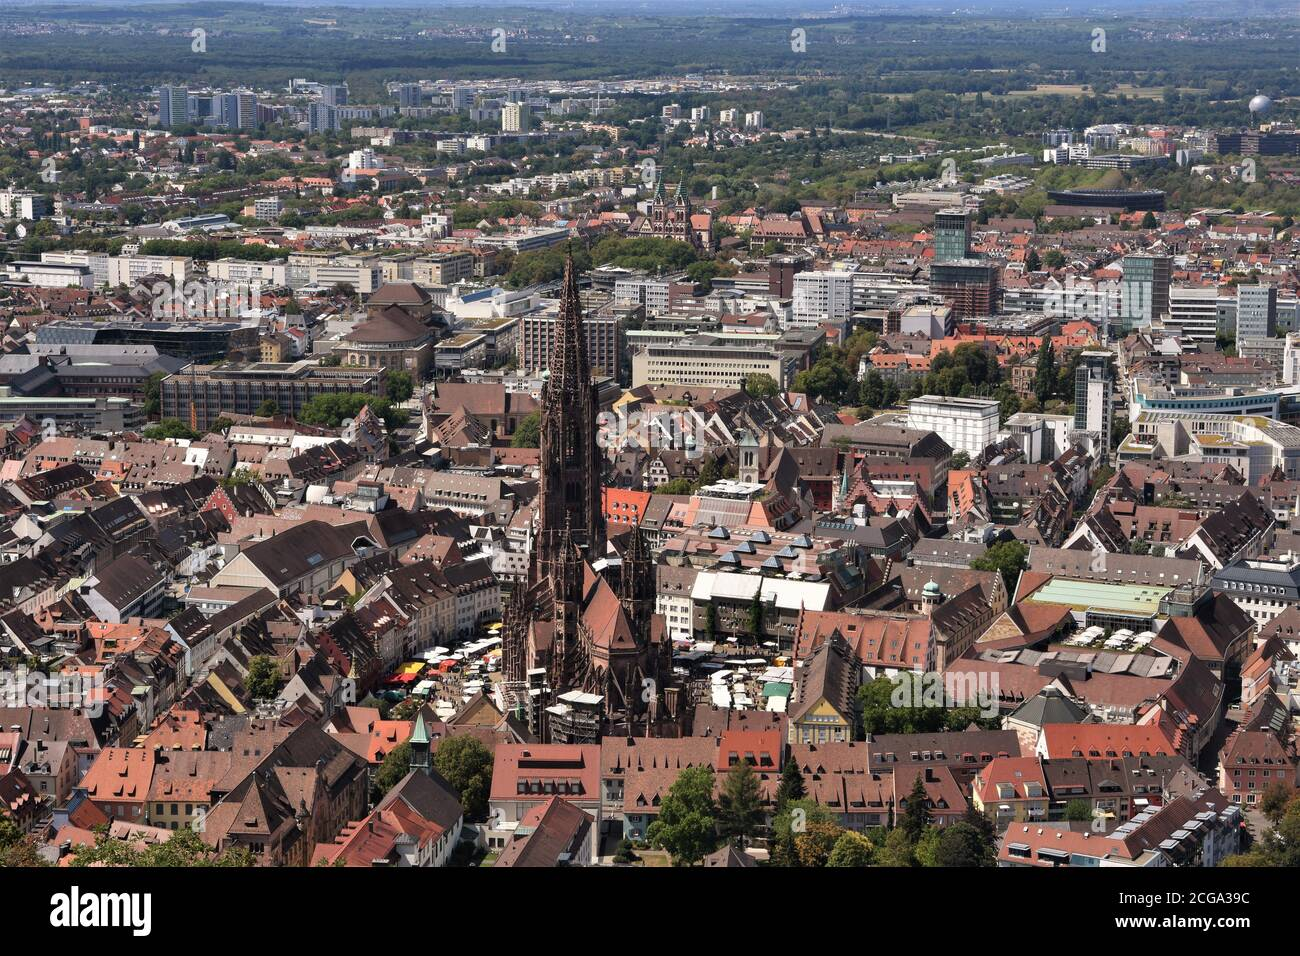 View from lookout Castle Hill Tower on the panorama of the city of Freiburg im Breisgau, Baden-Württemberg, Germany. On the picture is  old center. Stock Photo